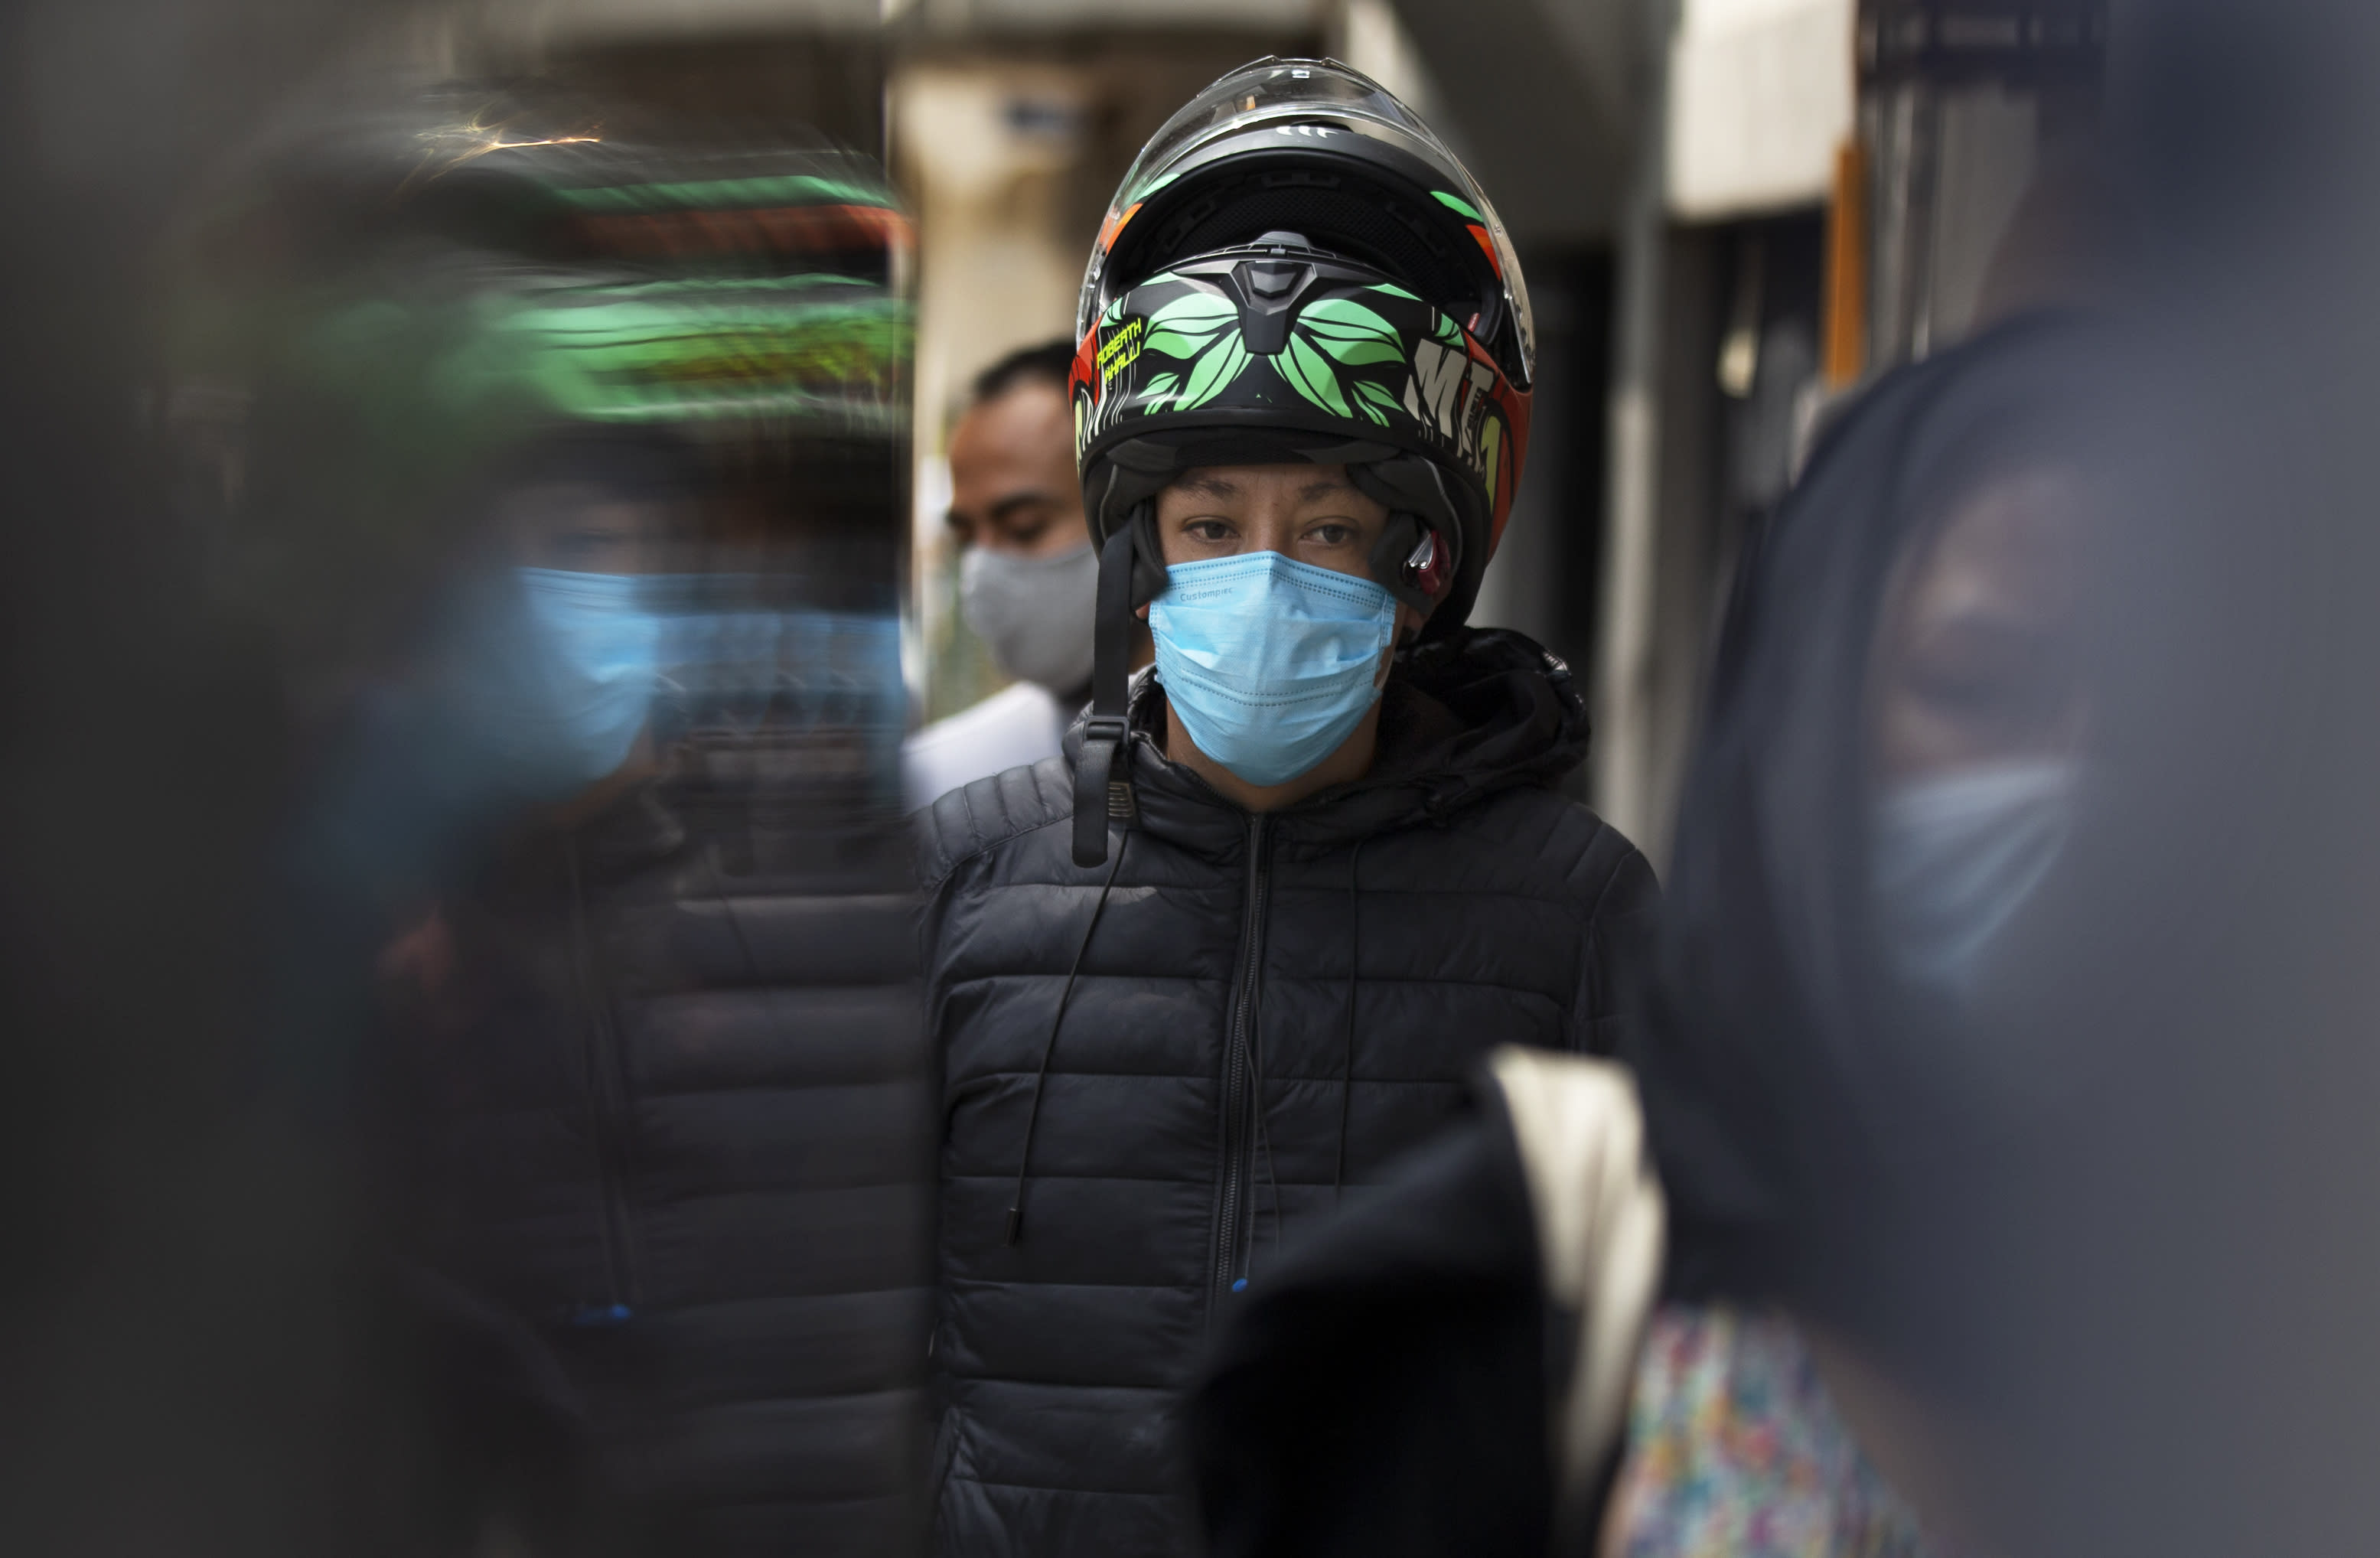 """A customer, wearing a protective face mask amid the new coronavirus pandemic, stands in line at stall selling """"torta de chilaquiles"""", in Mexico City, Saturday, Aug. 1, 2020. More than half of Mexicans work in the informal economy, which is believed to have shed many more jobs as the economic shutdown caused by the COVID-19 pandemic has driven the country deeper into a recession. (AP Photo/Marco Ugarte)"""